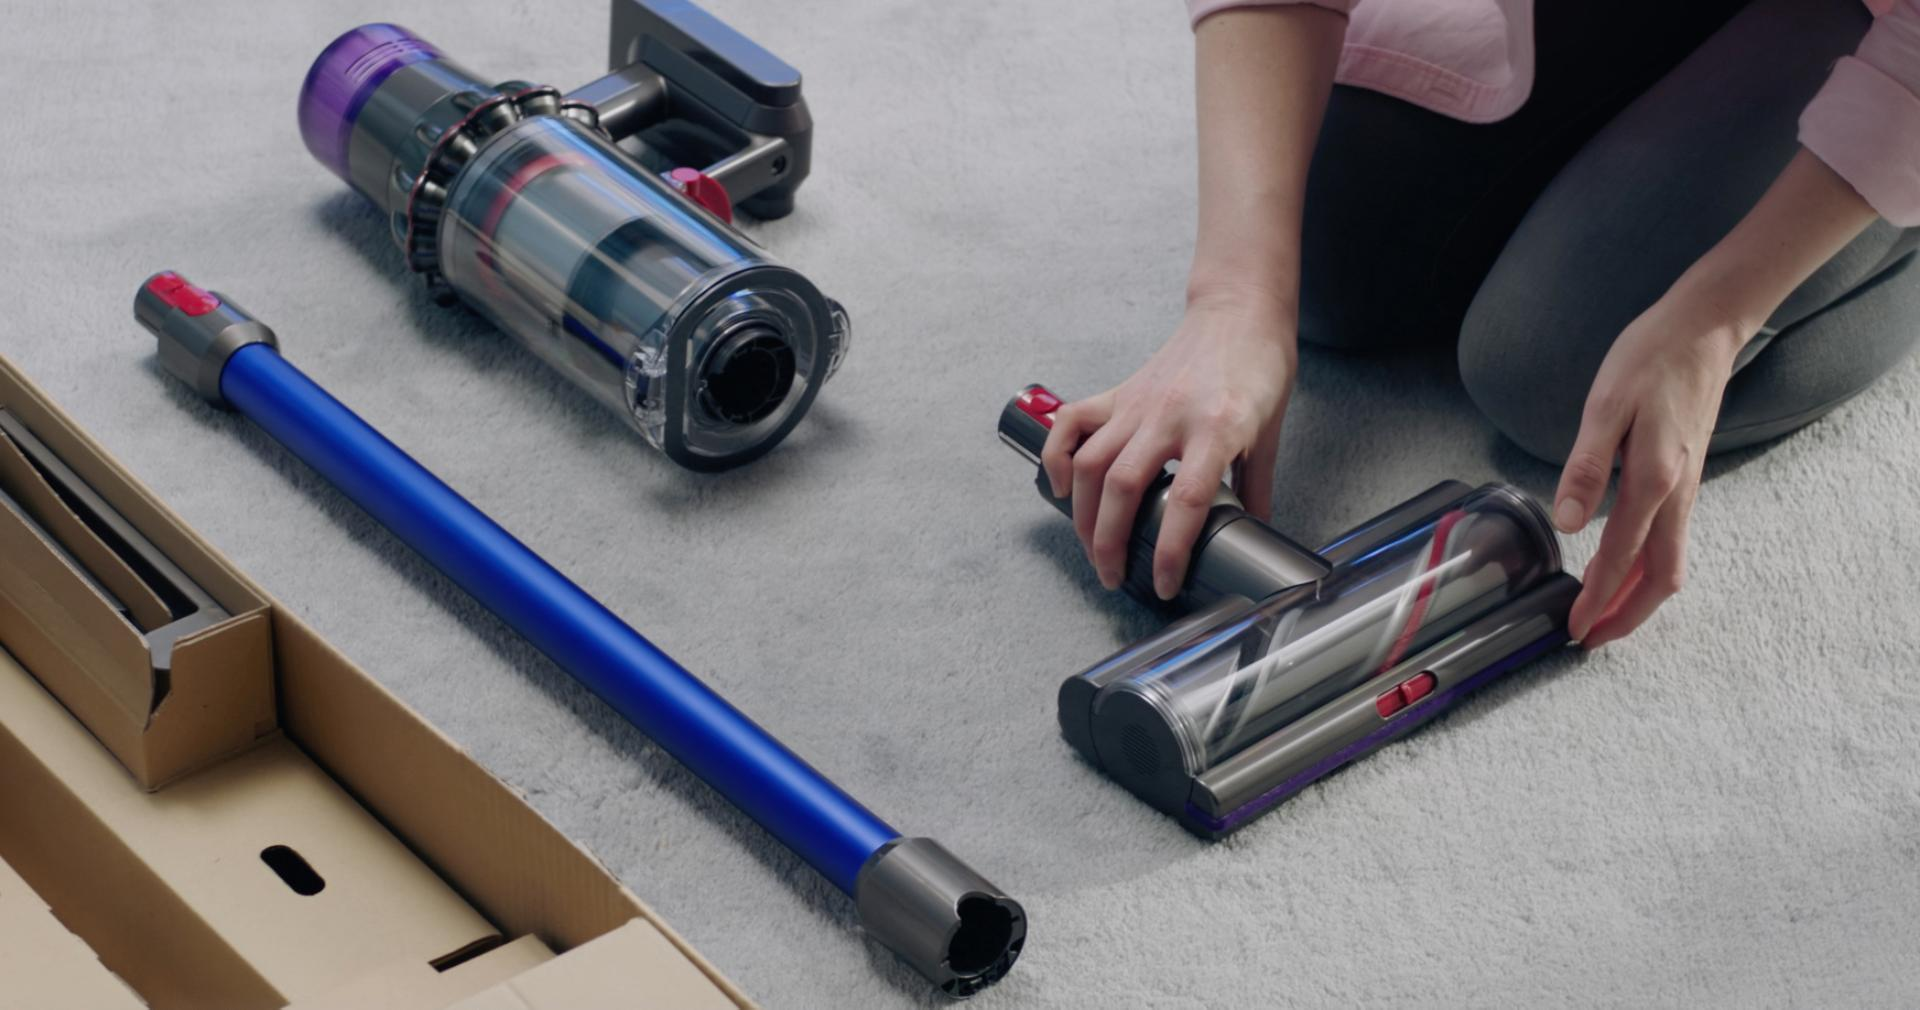 Different components of the Dyson V11™ vacuum